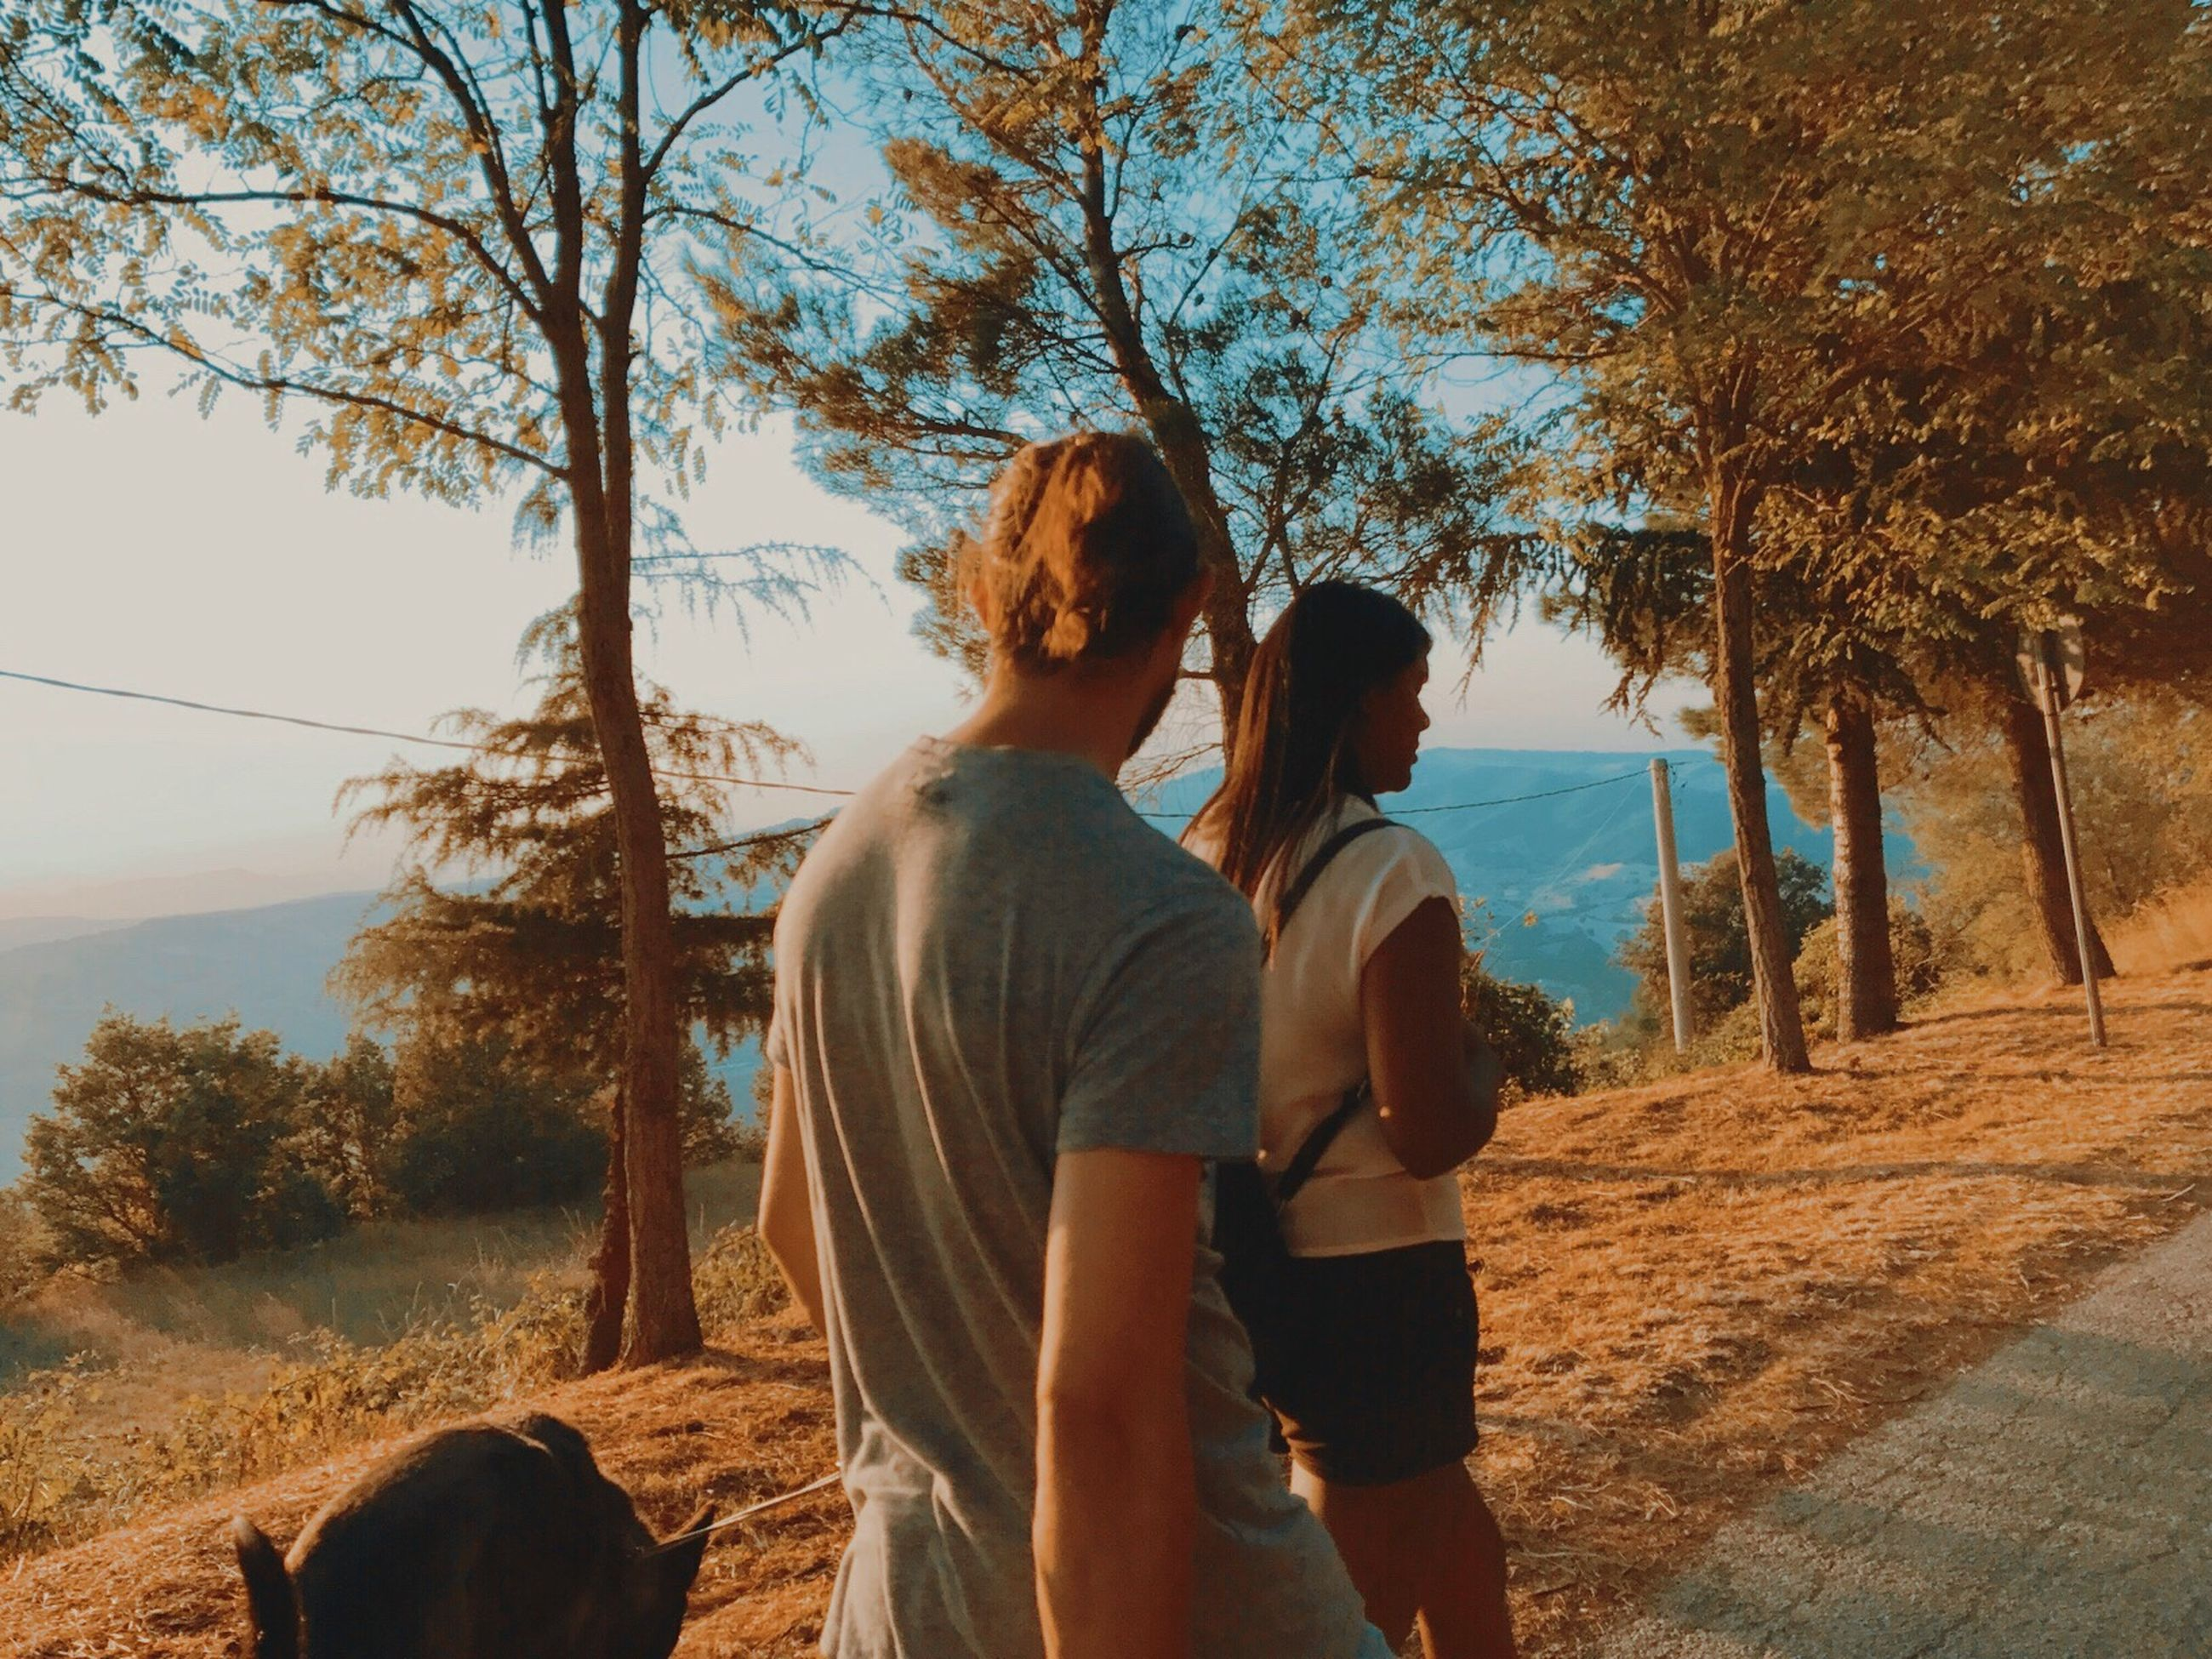 real people, two people, rear view, togetherness, tree, love, couple - relationship, leisure activity, nature, bonding, casual clothing, outdoors, lifestyles, day, standing, landscape, sky, men, scenics, women, beauty in nature, mammal, people